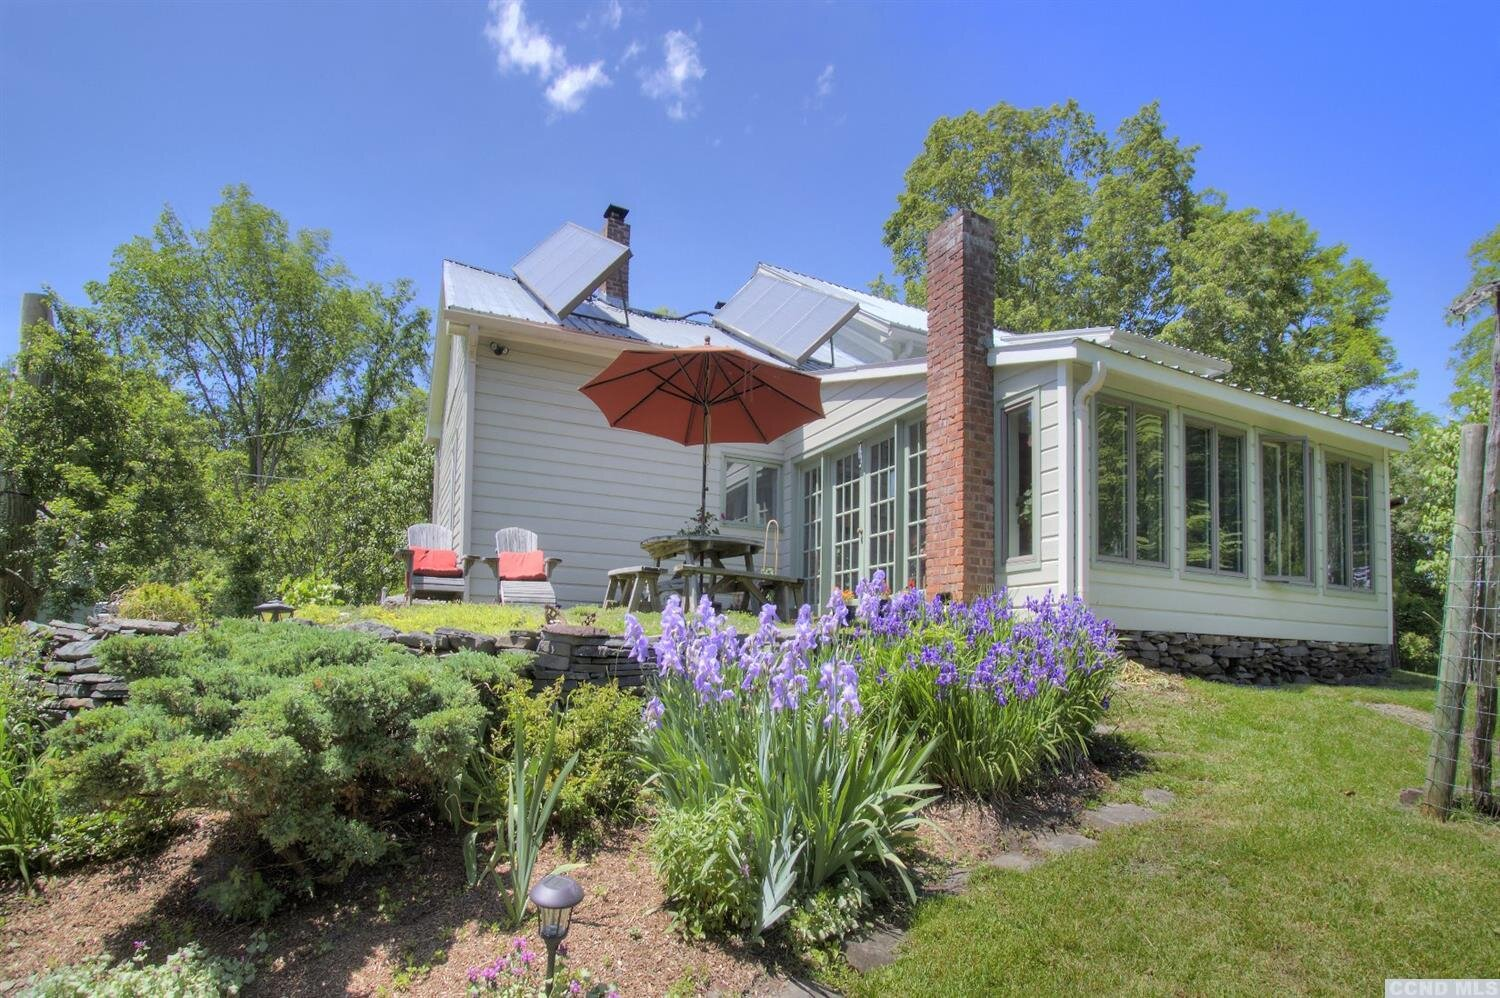 Listing courtesy of Halstead Hudson Valley